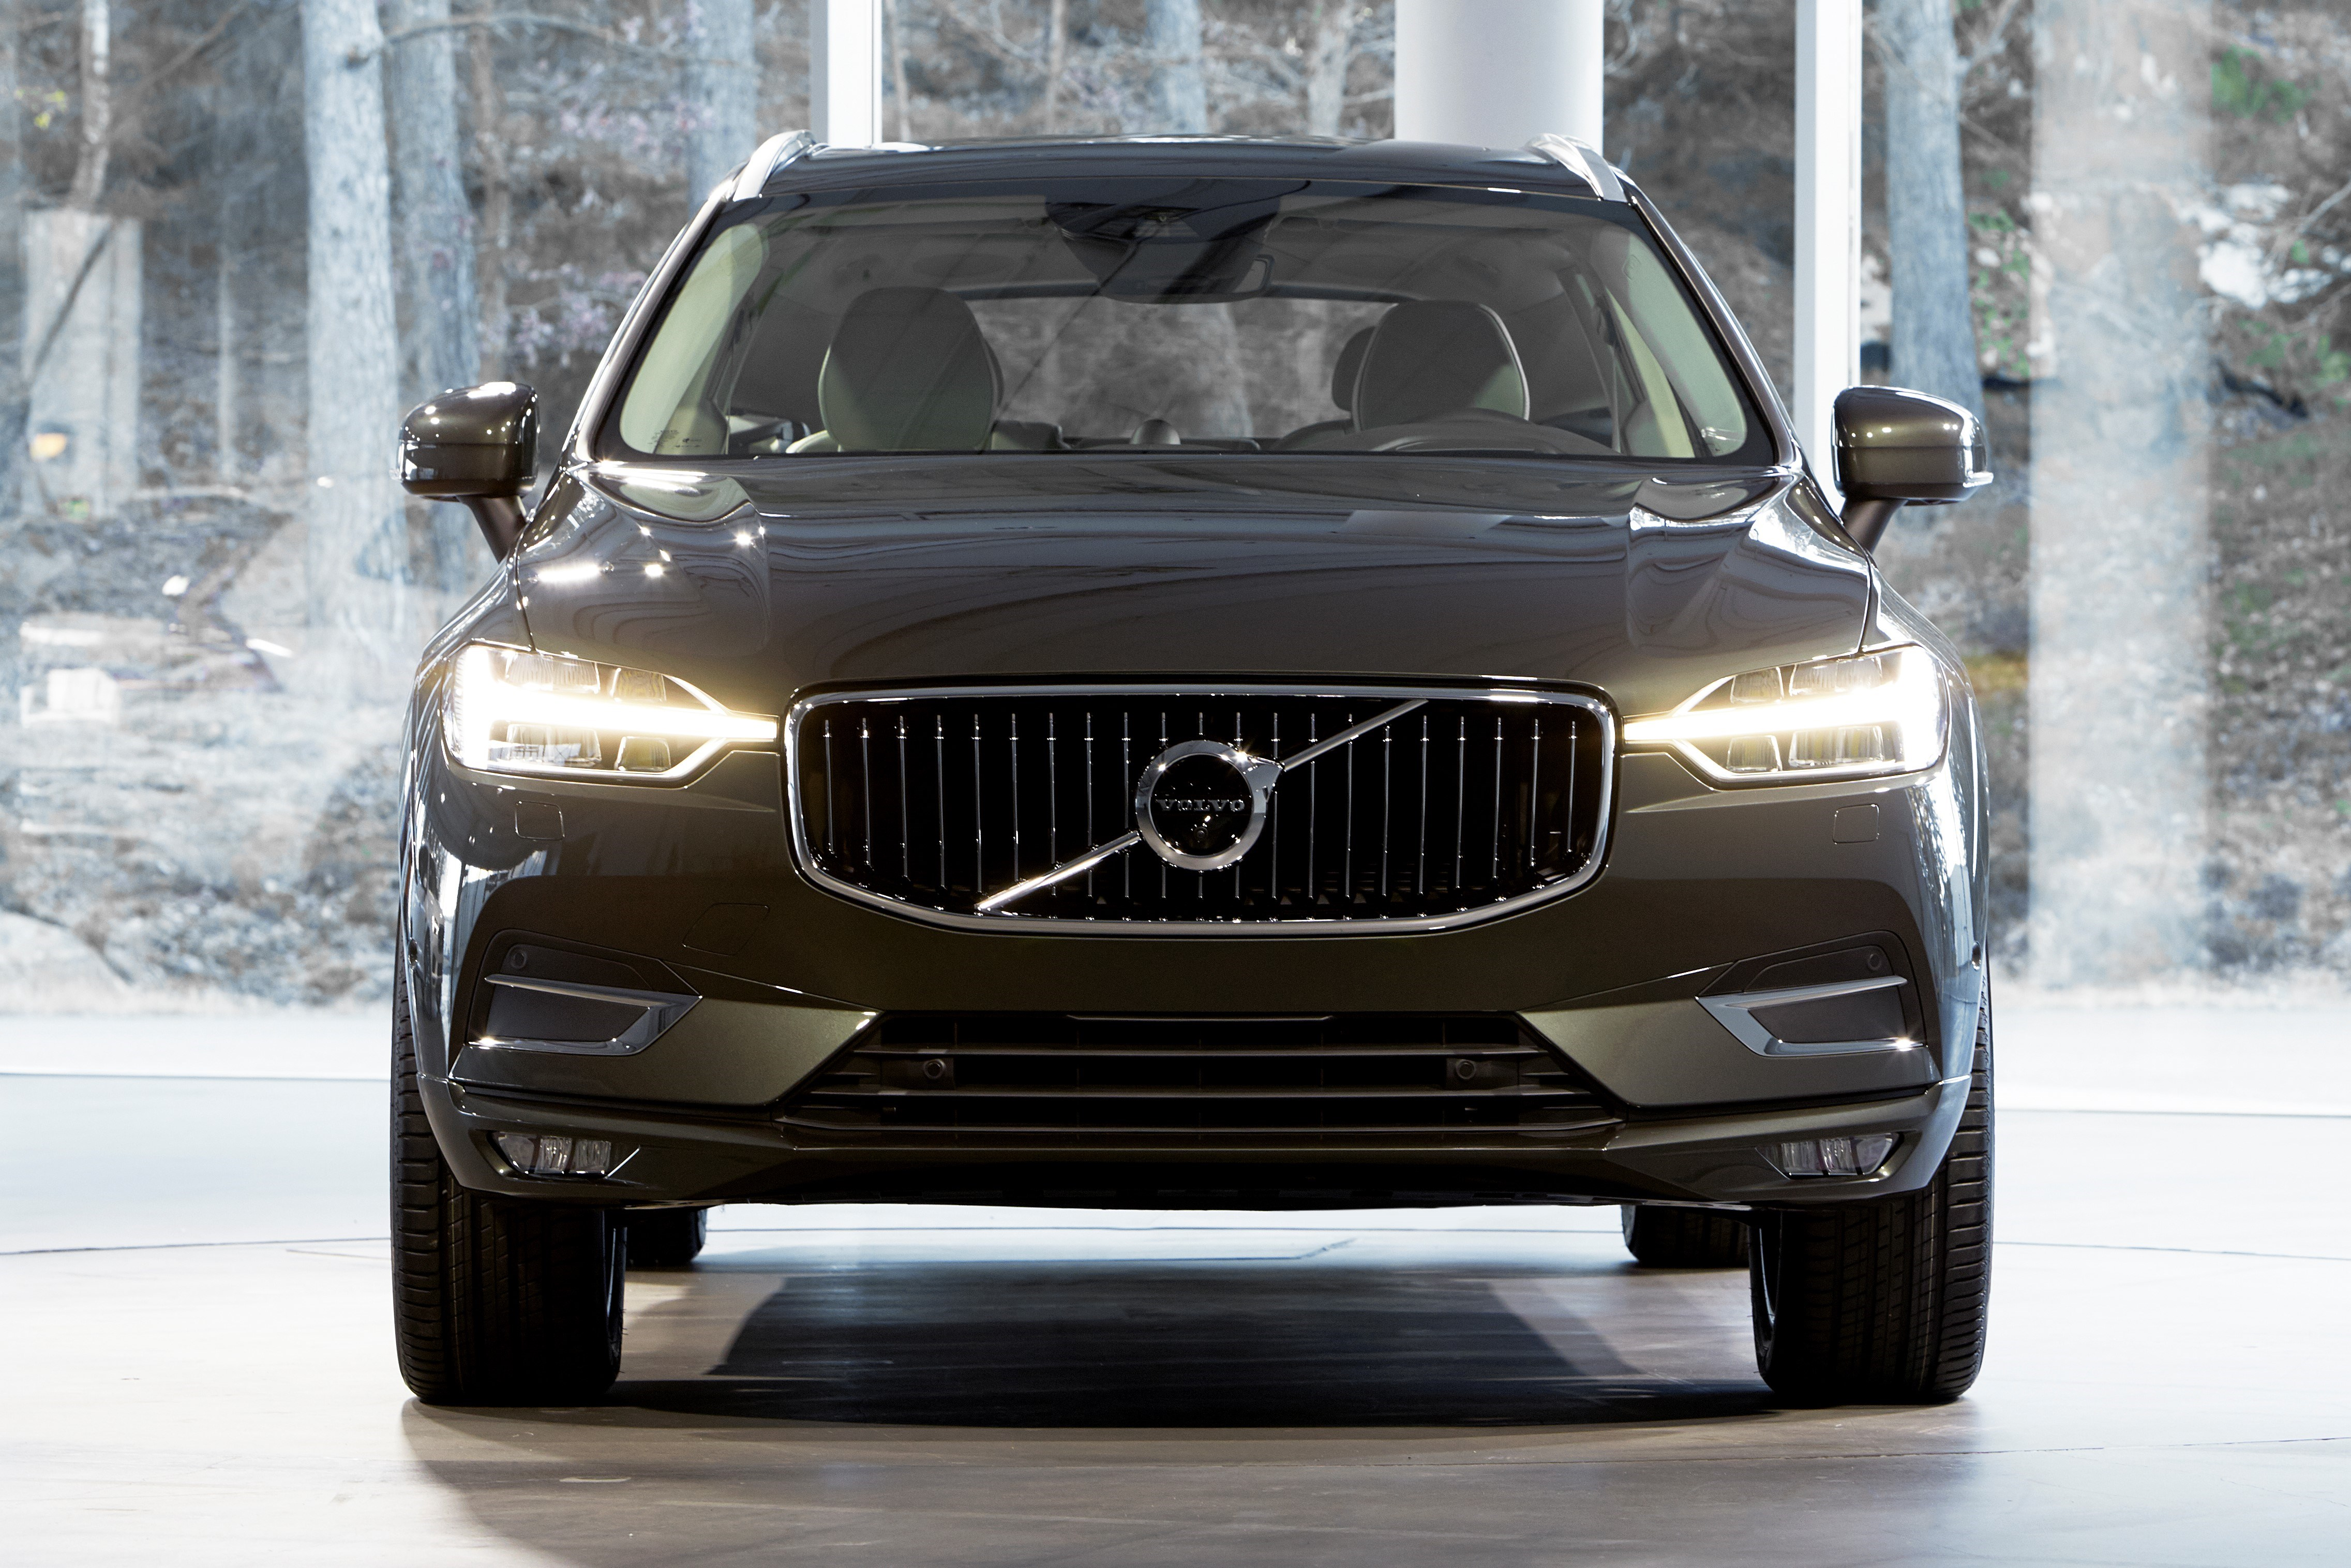 Volvo Xc90 2018 >> 2018 Volvo XC60 unveiled – 407 hp T8 plug-in hybrid Paul Tan - Image 625853